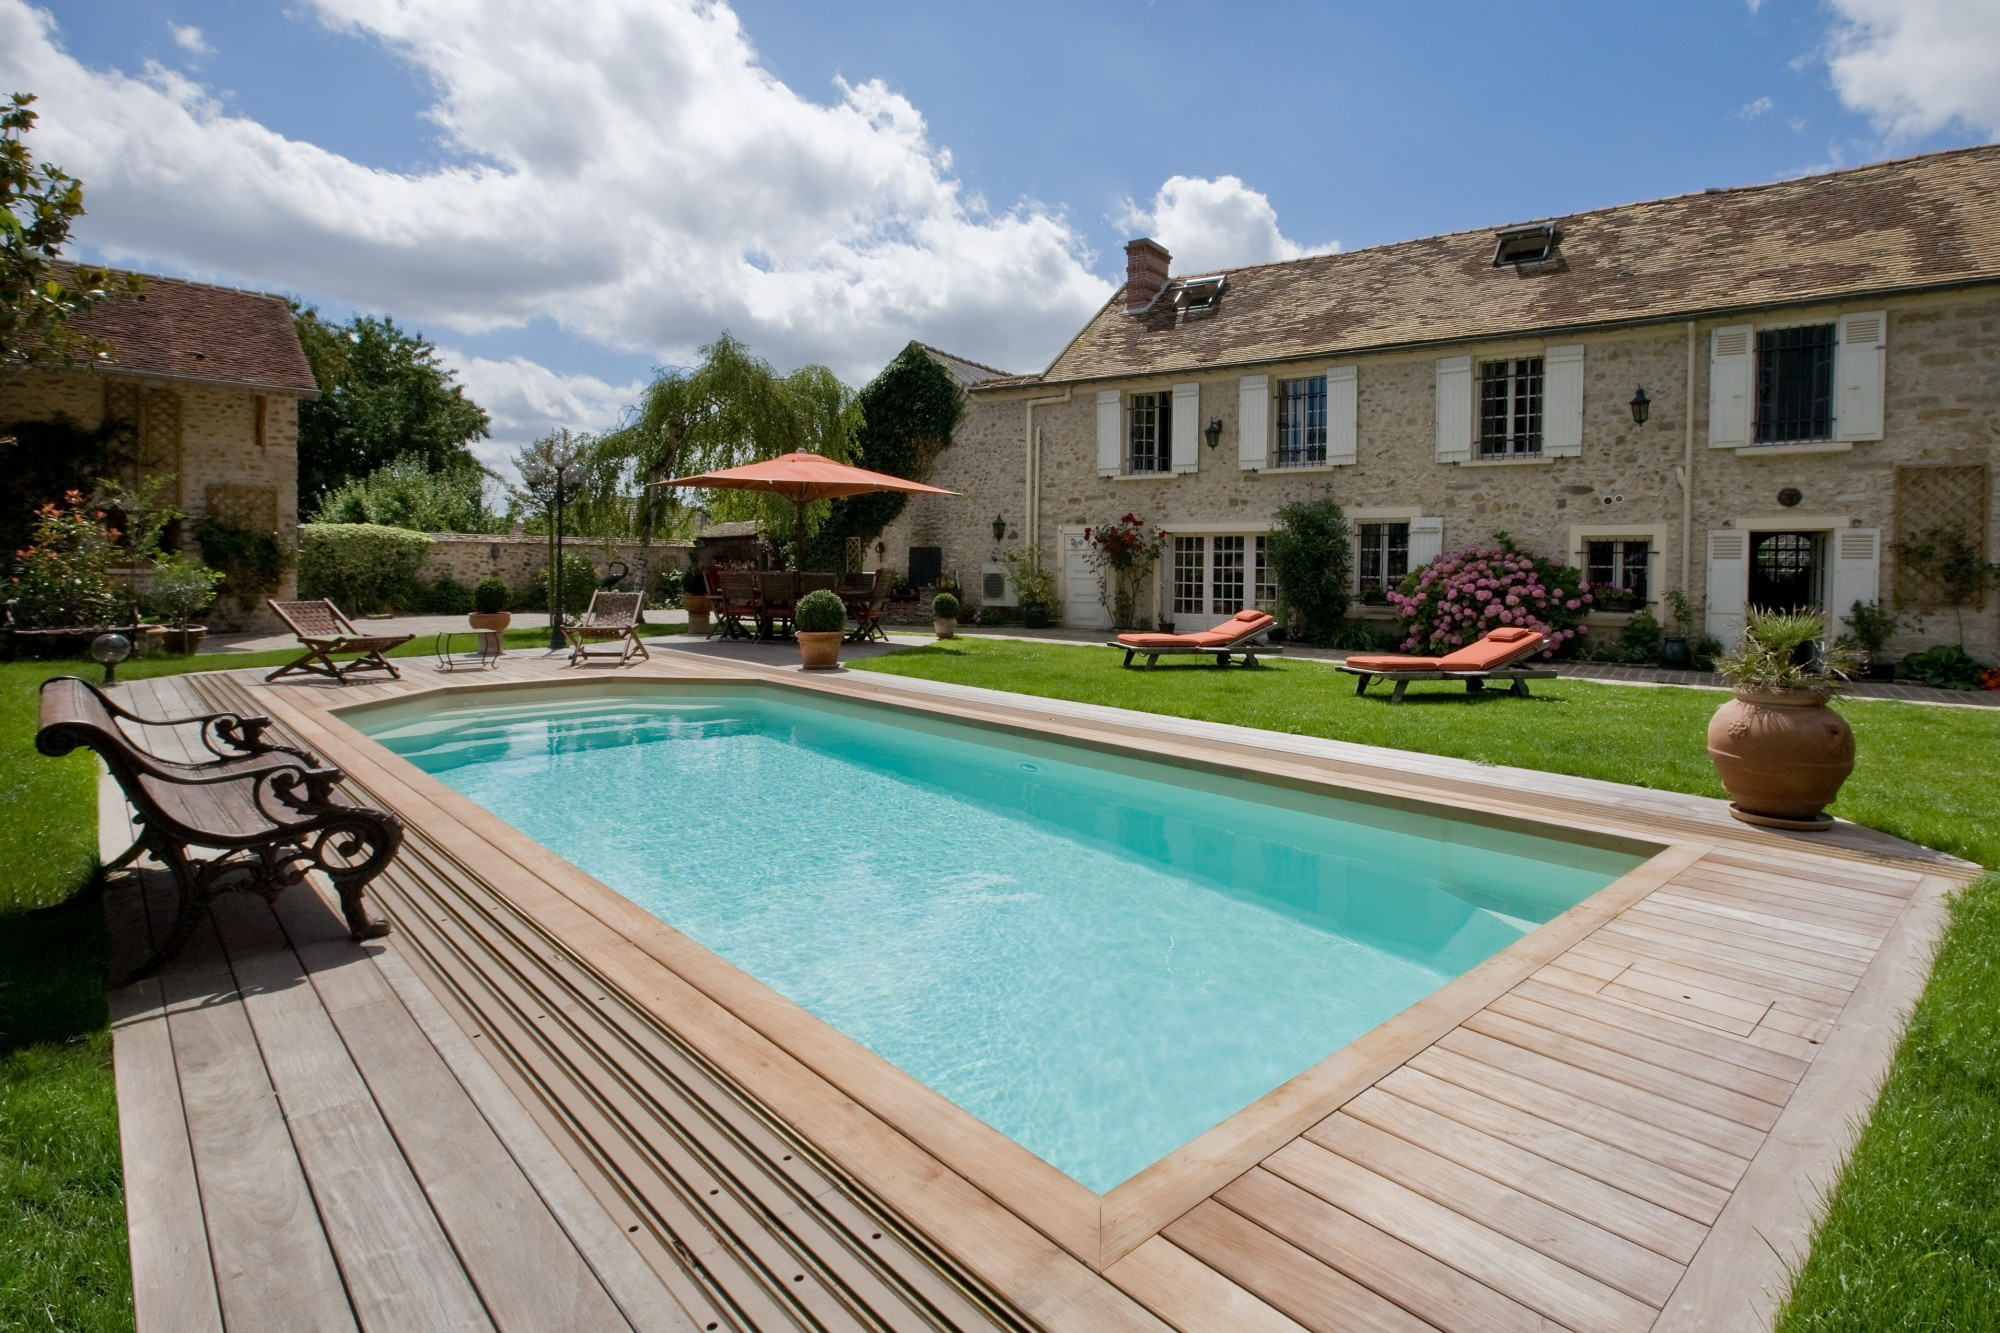 Piscine guide choix de solution co t et devis en ligne for Cout de construction piscine